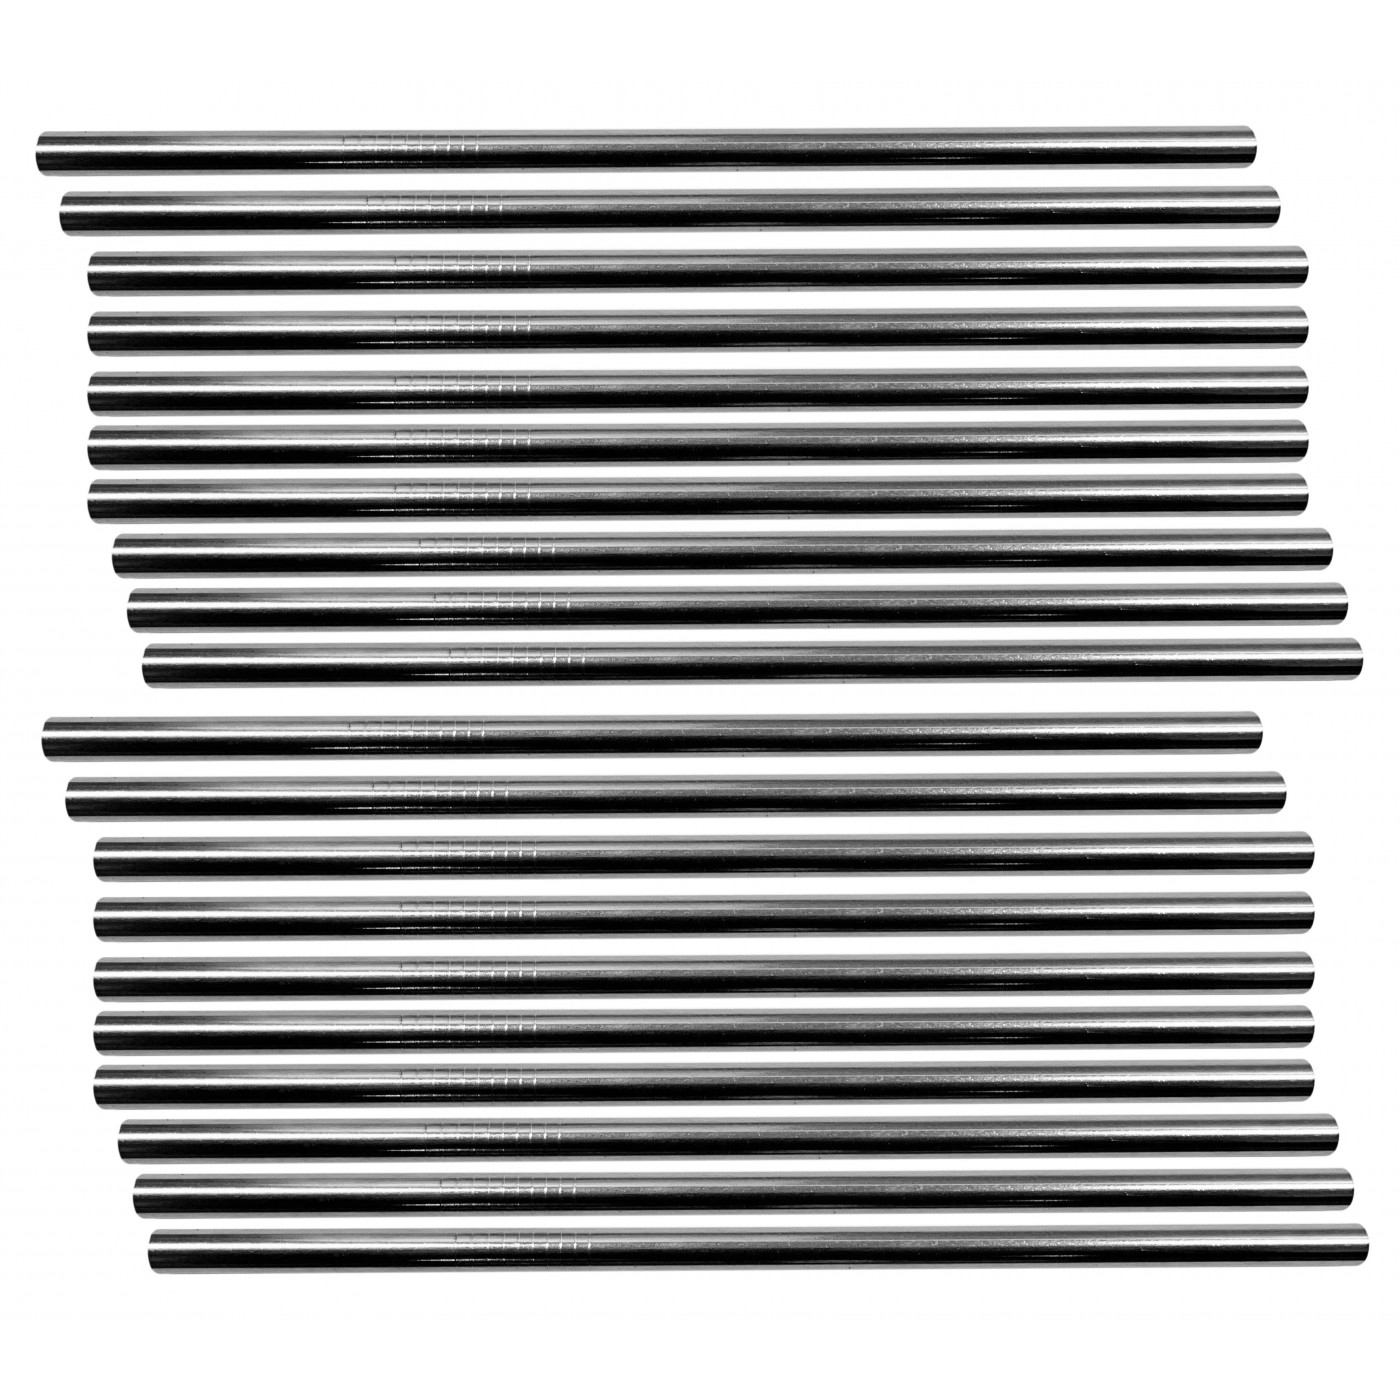 Set of 20 stainless steel pipes/straws (8 mm diameter)  - 1